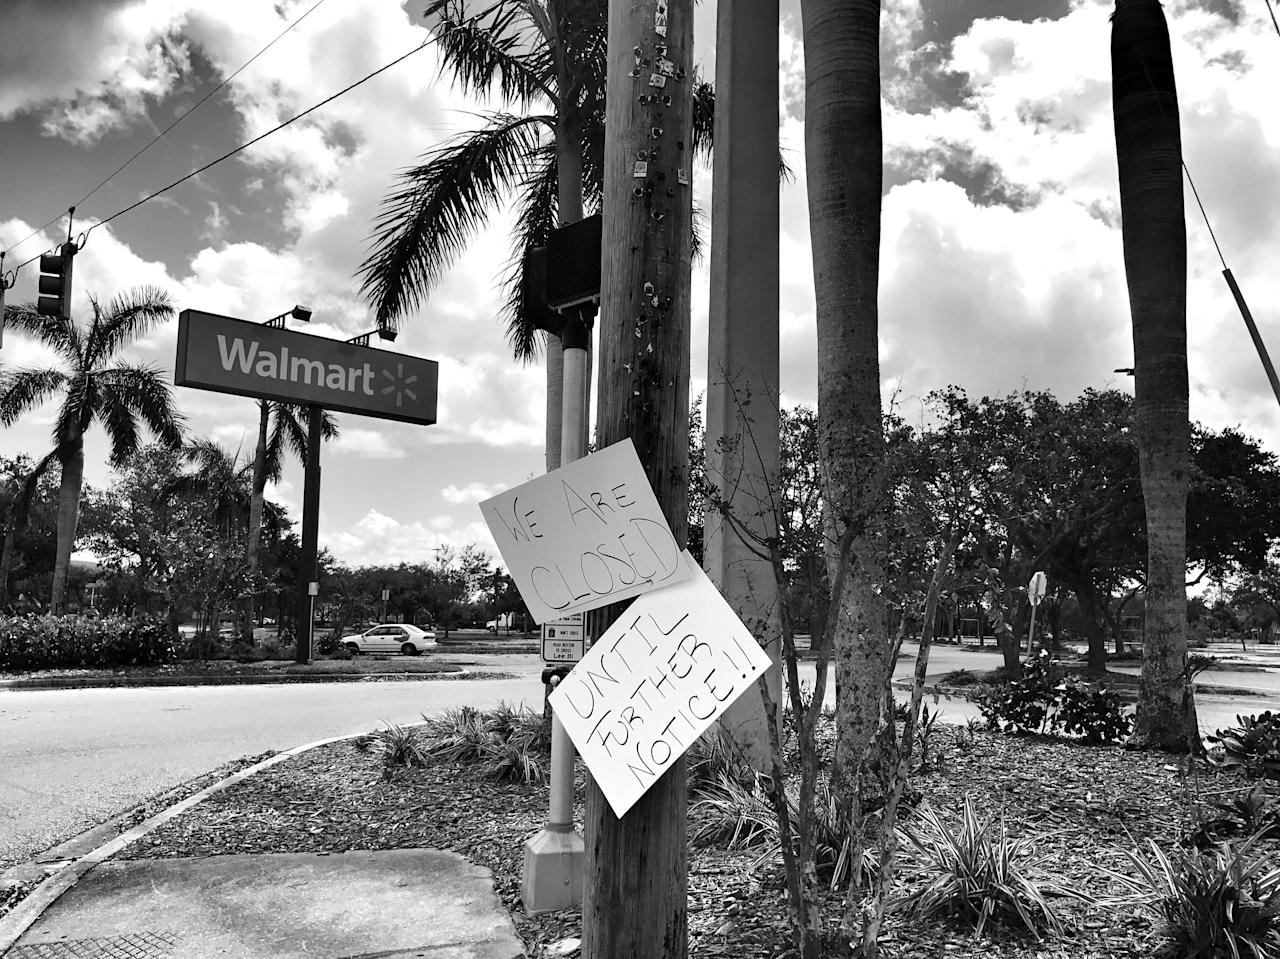 <p>A Walmart store remained closed Tuesday amid widespread power outages in the aftermath of Hurricane Irma in Fort Myers, Fla. (Photo: Holly Bailey/Yahoo News) </p>